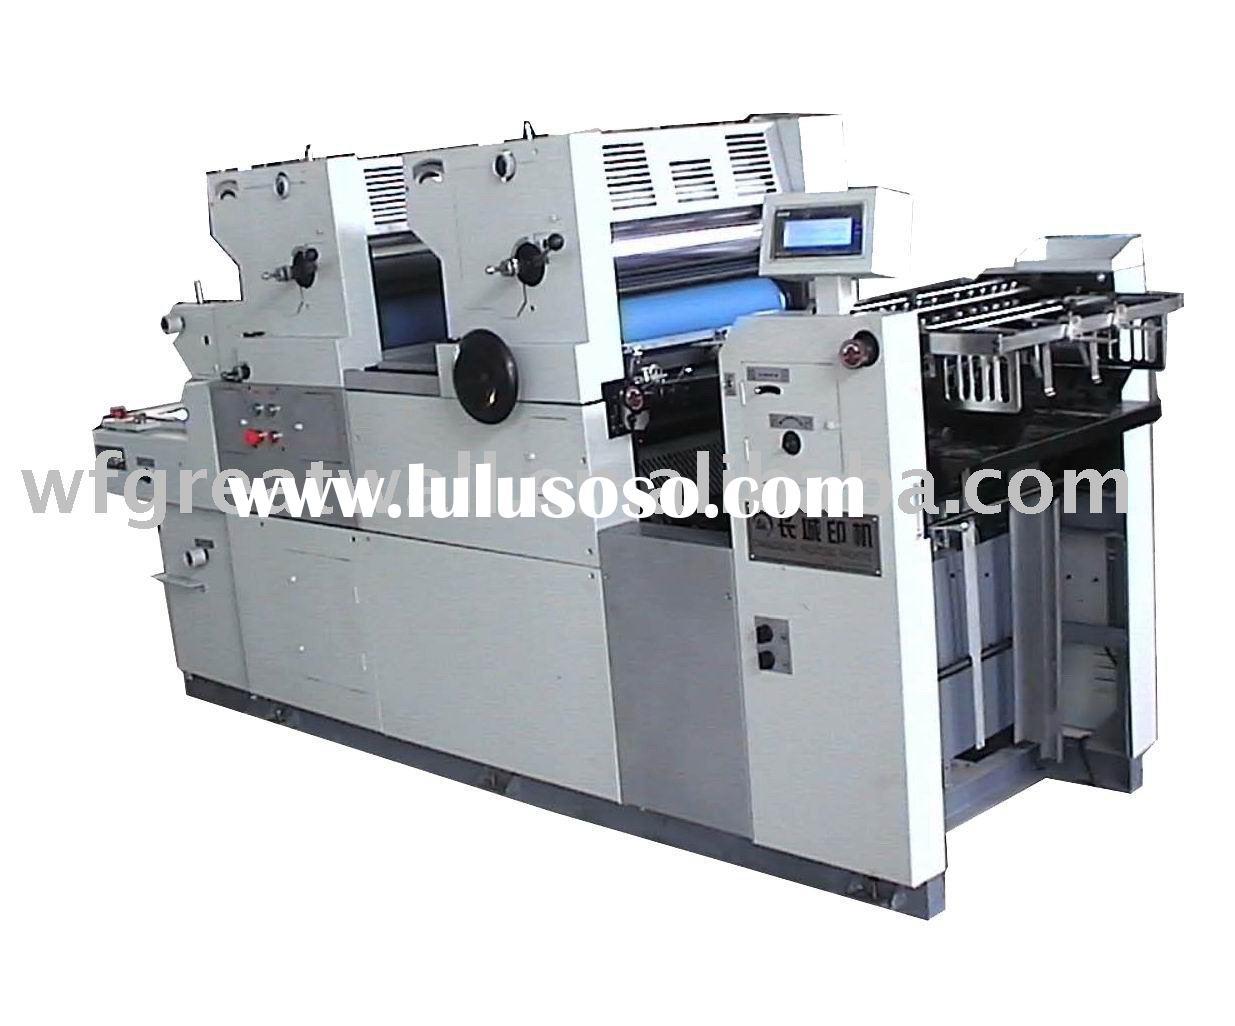 Two color offset printing machine(good quality with suitable price)